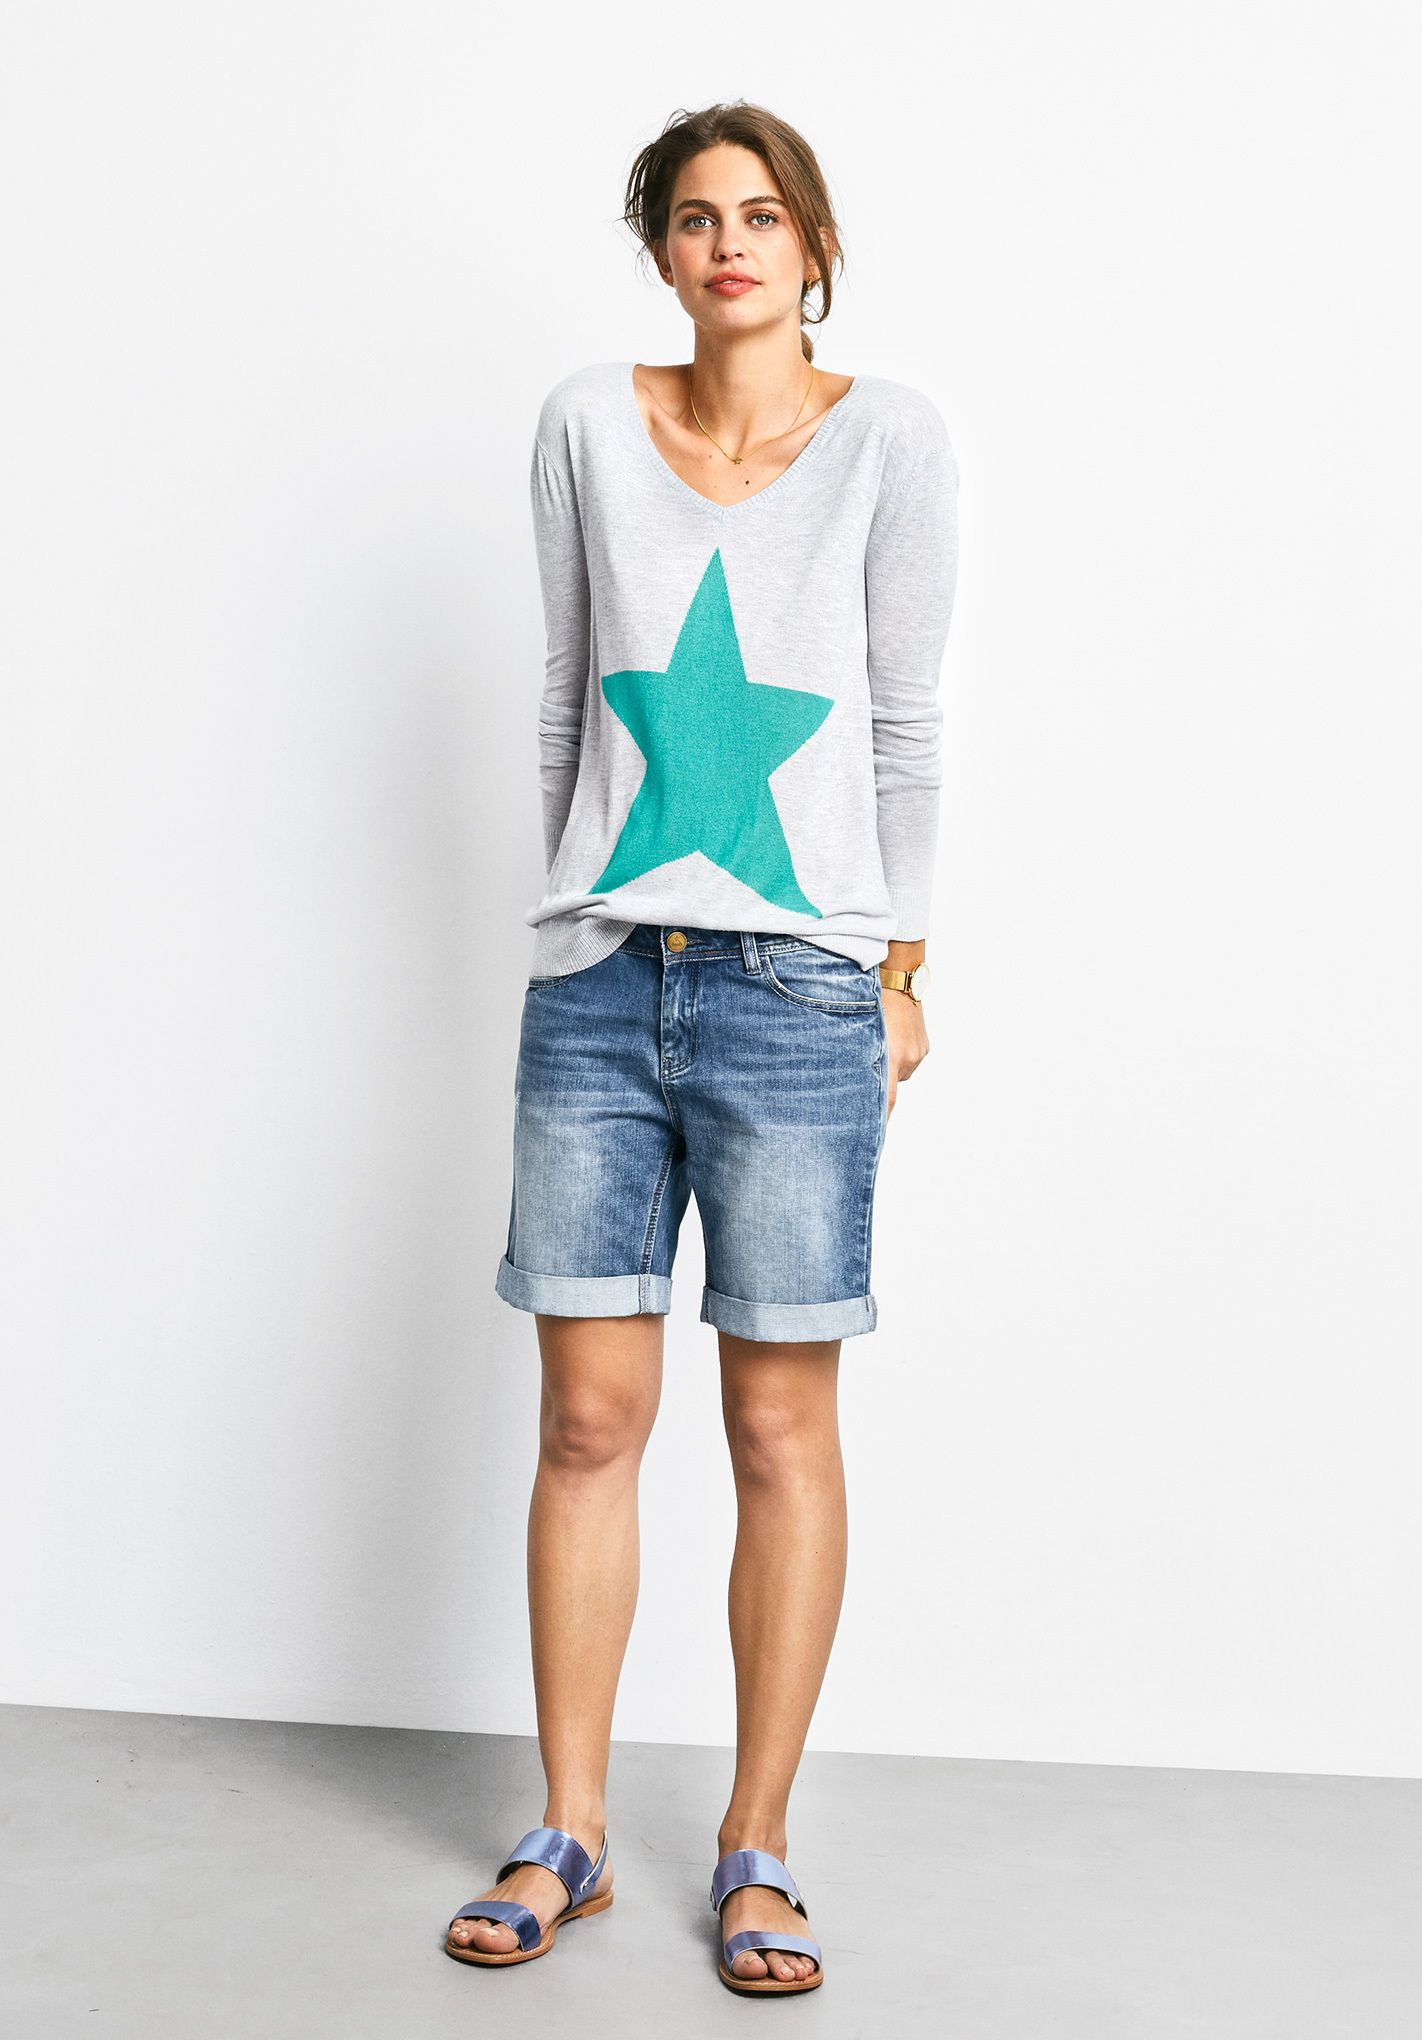 Outfit style with bermuda shorts, sweater, shorts